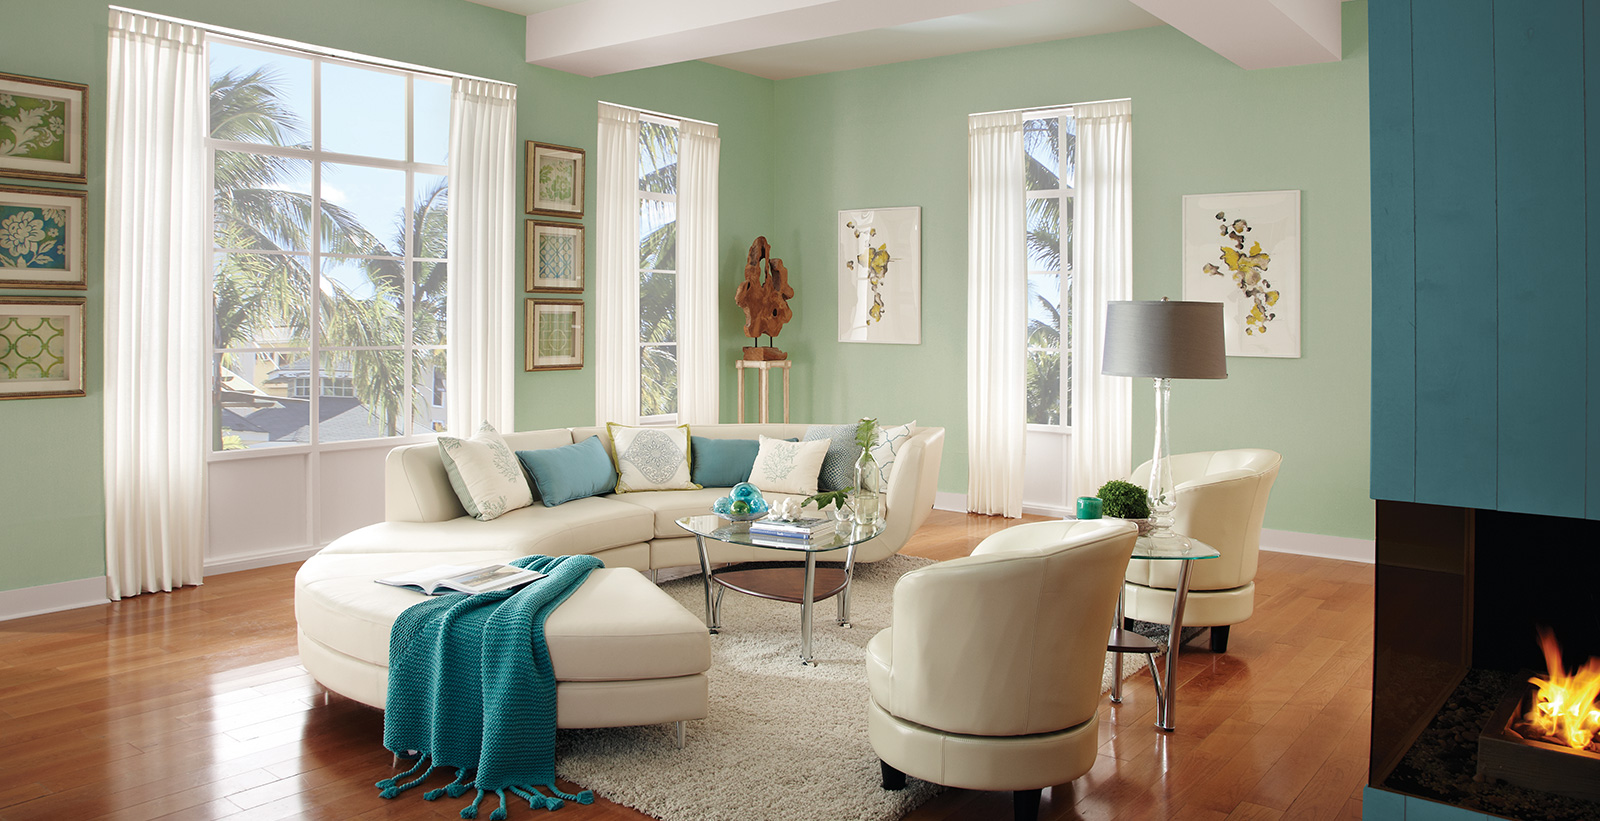 Coastal living room with pale green on main walls, teal on wall with fireplace, white on trim, and cream couch and chairs